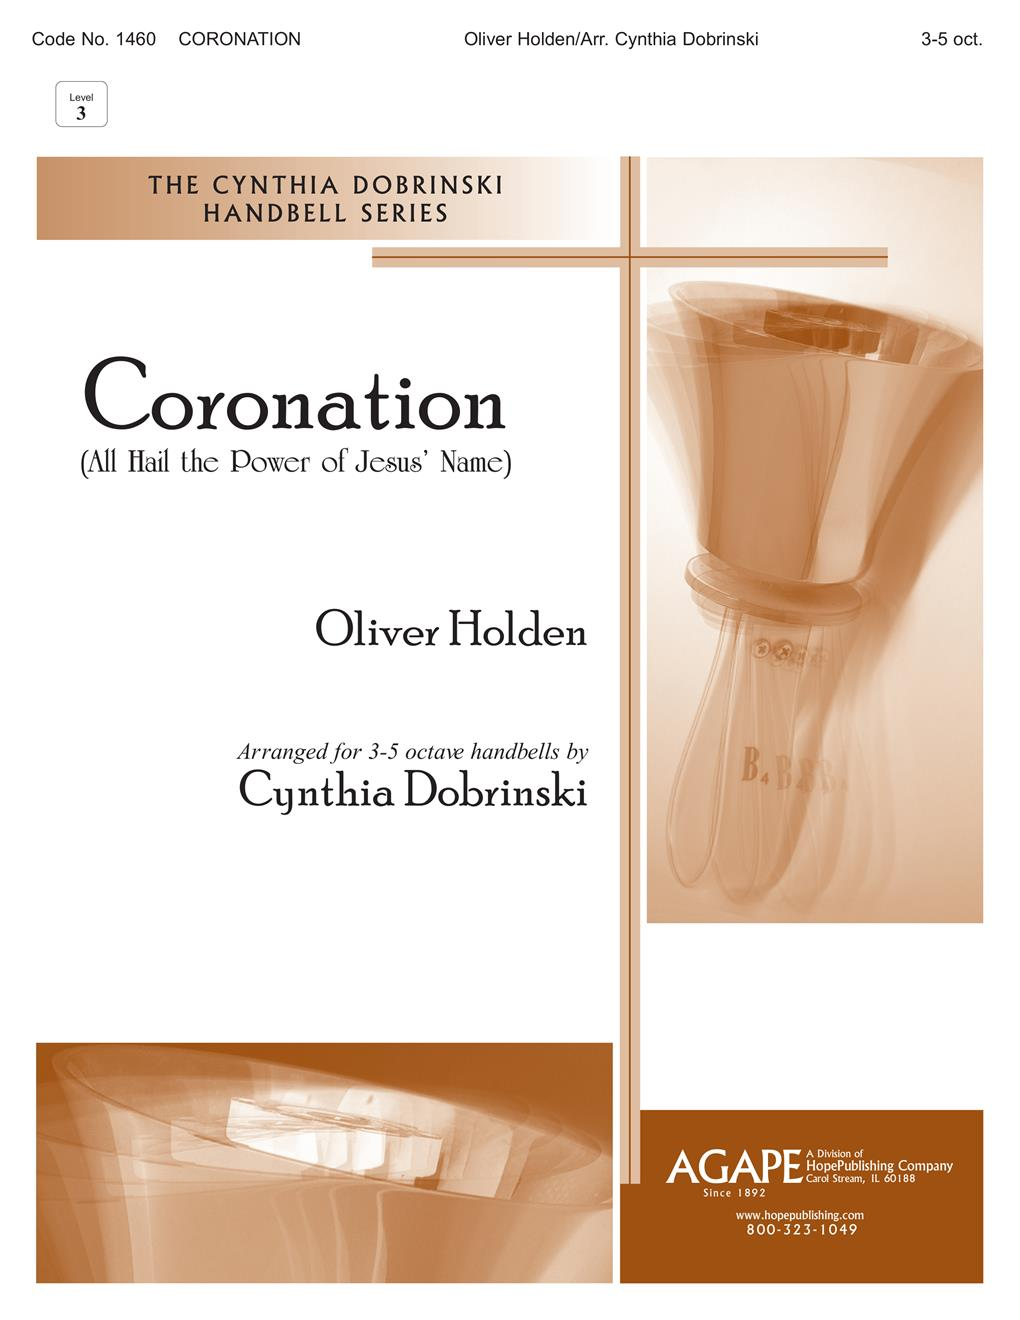 Coronation - 3-5 Oct. Cover Image